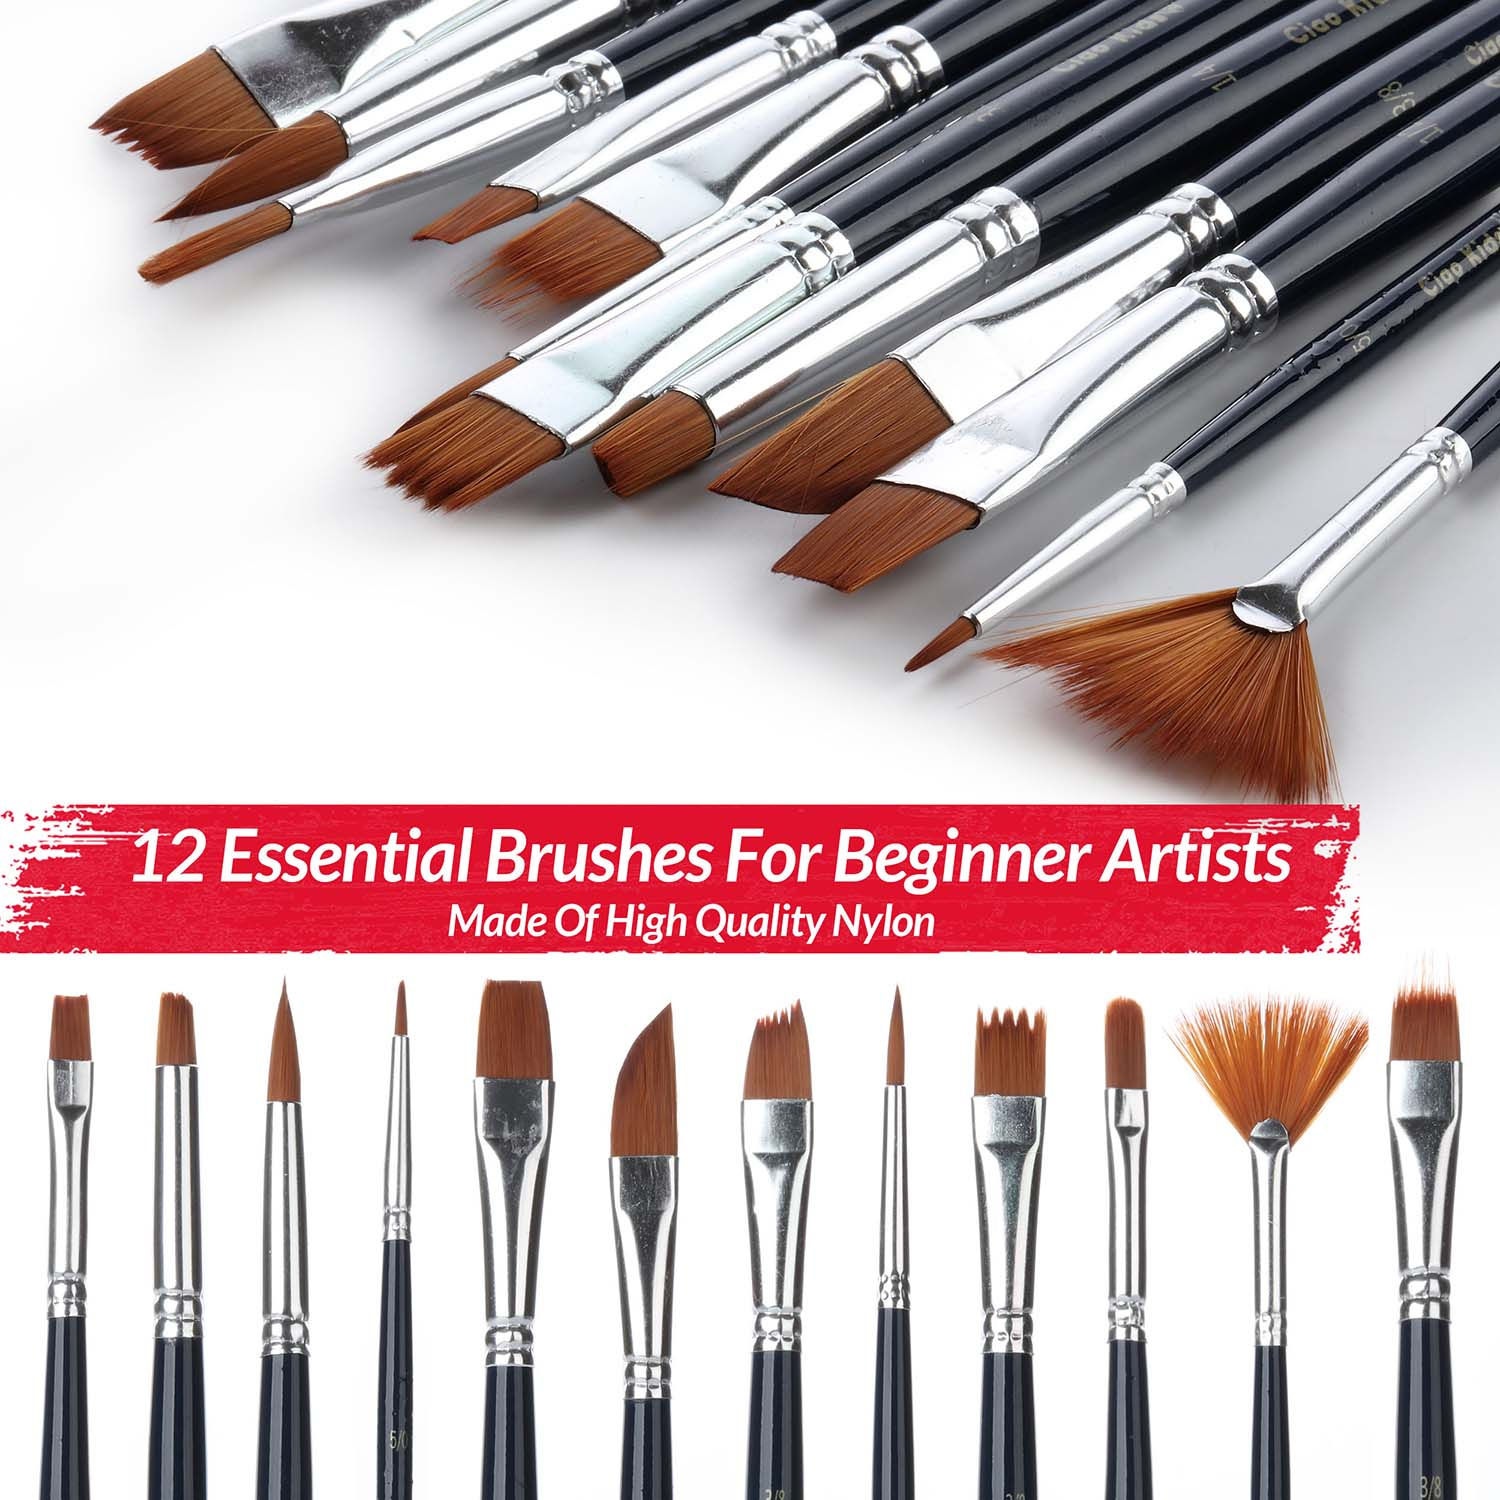 RiseBrite Kids Art Sets Include 12 Essential Paint Brushes For Young Artists To Start With